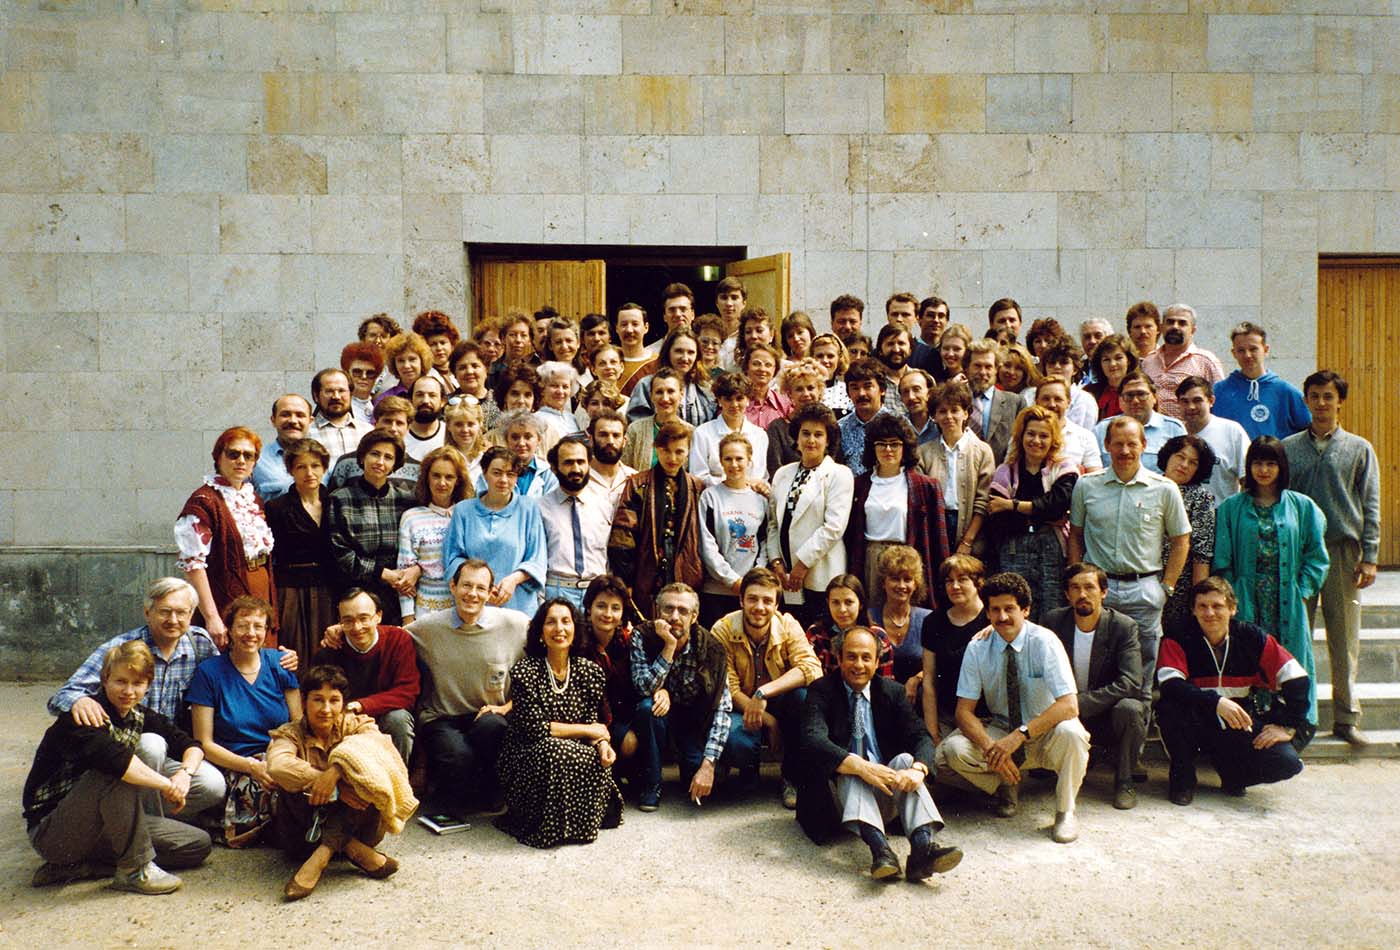 Conference on Positive Psychotherapy in Kazan, Russia 1992 with Nossrat, Manije and Hamid Peseschkian, Russian colleagues from many areas, and Arno Remmers (my first seminar in Russia, followed by many others in Novosibirsk, St. Peterburg, Moscow)